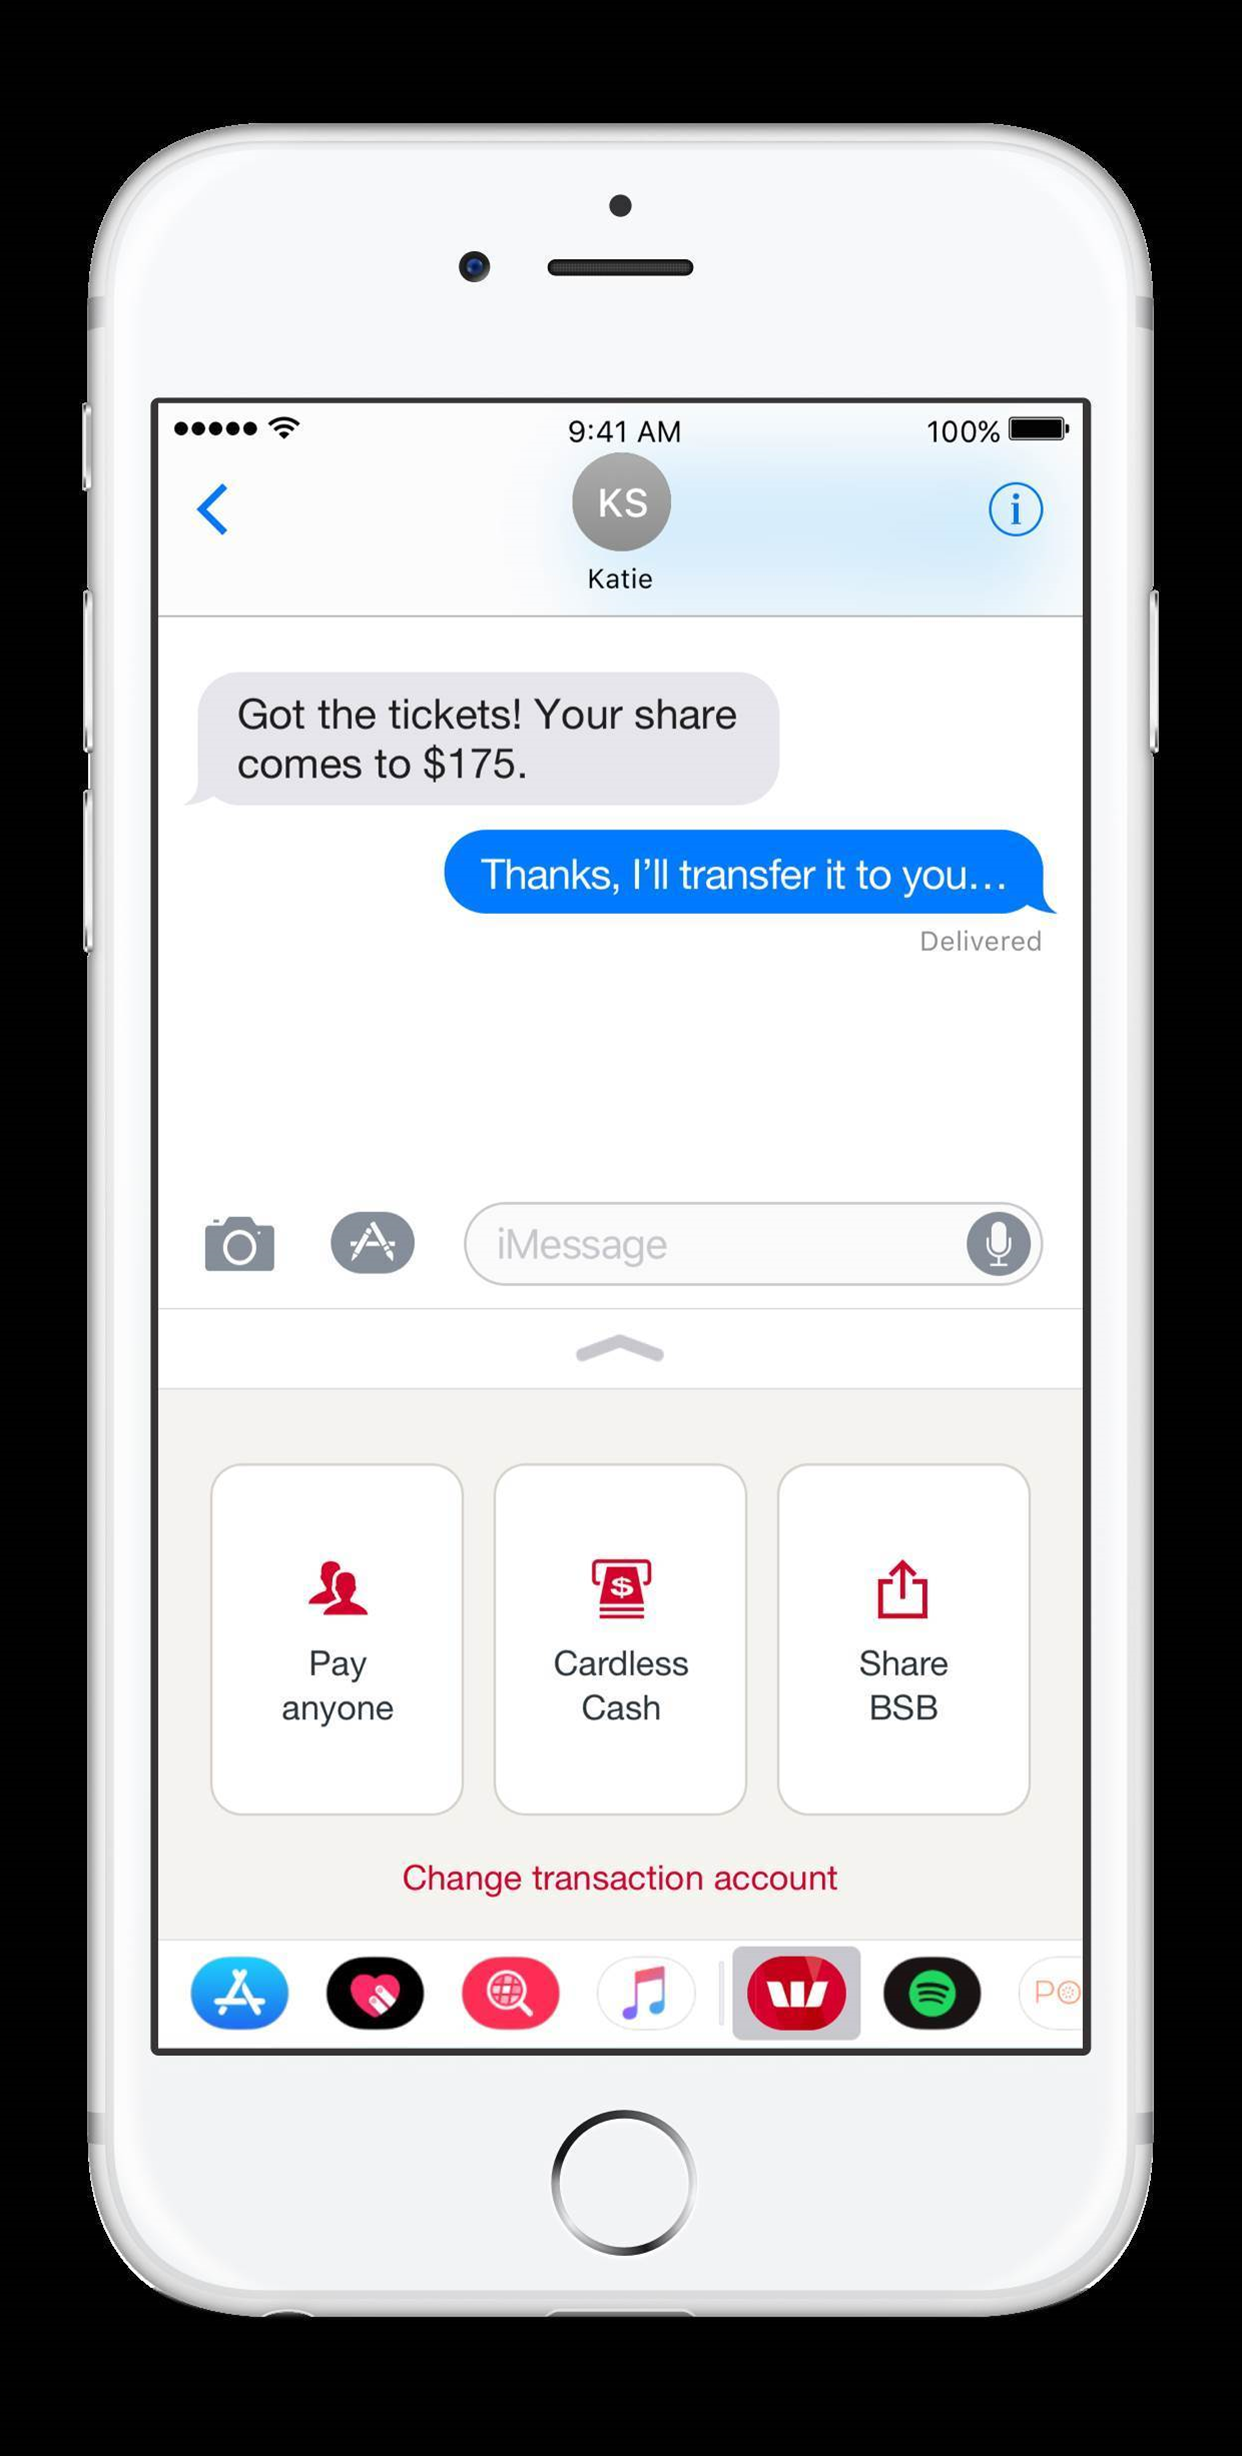 Westpac brings back chat payment tool after Apple ban